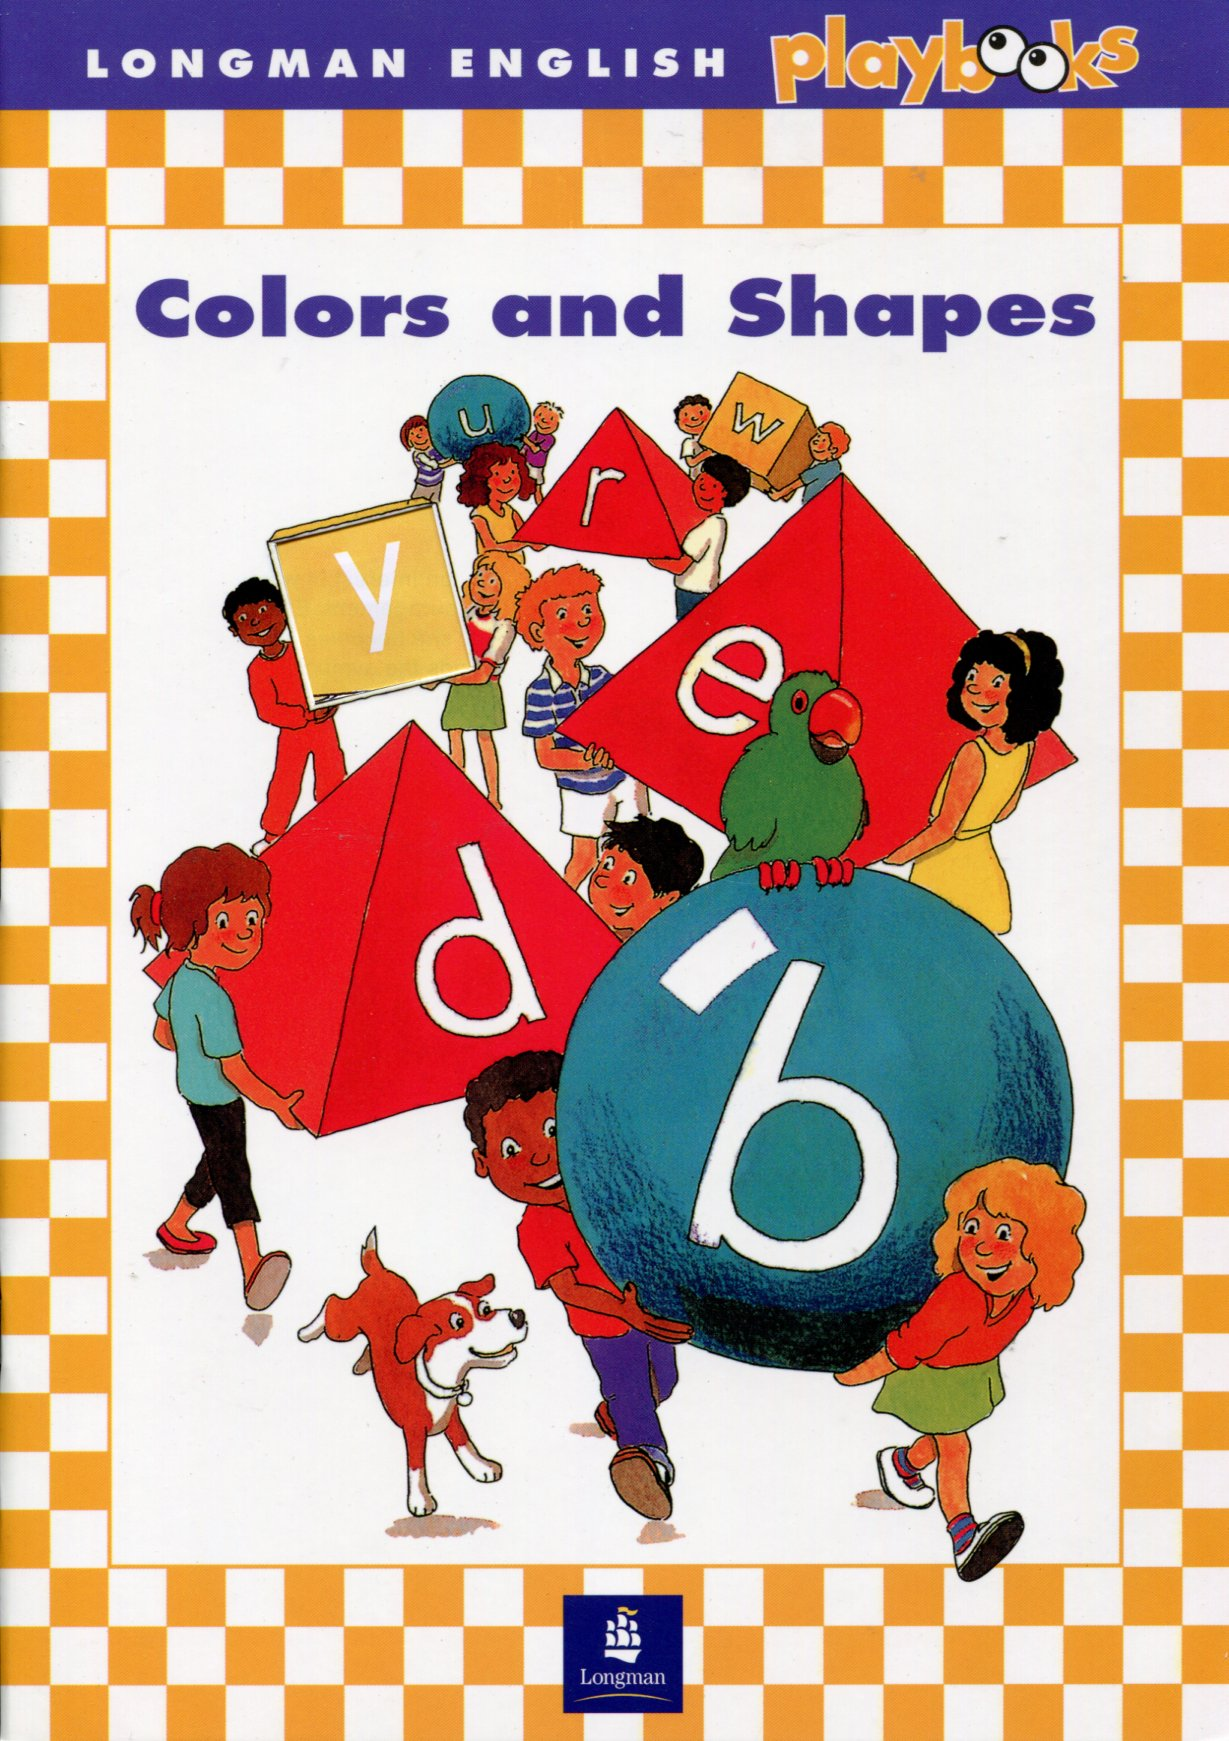 Longman English Playbooks: Colors and Shapes